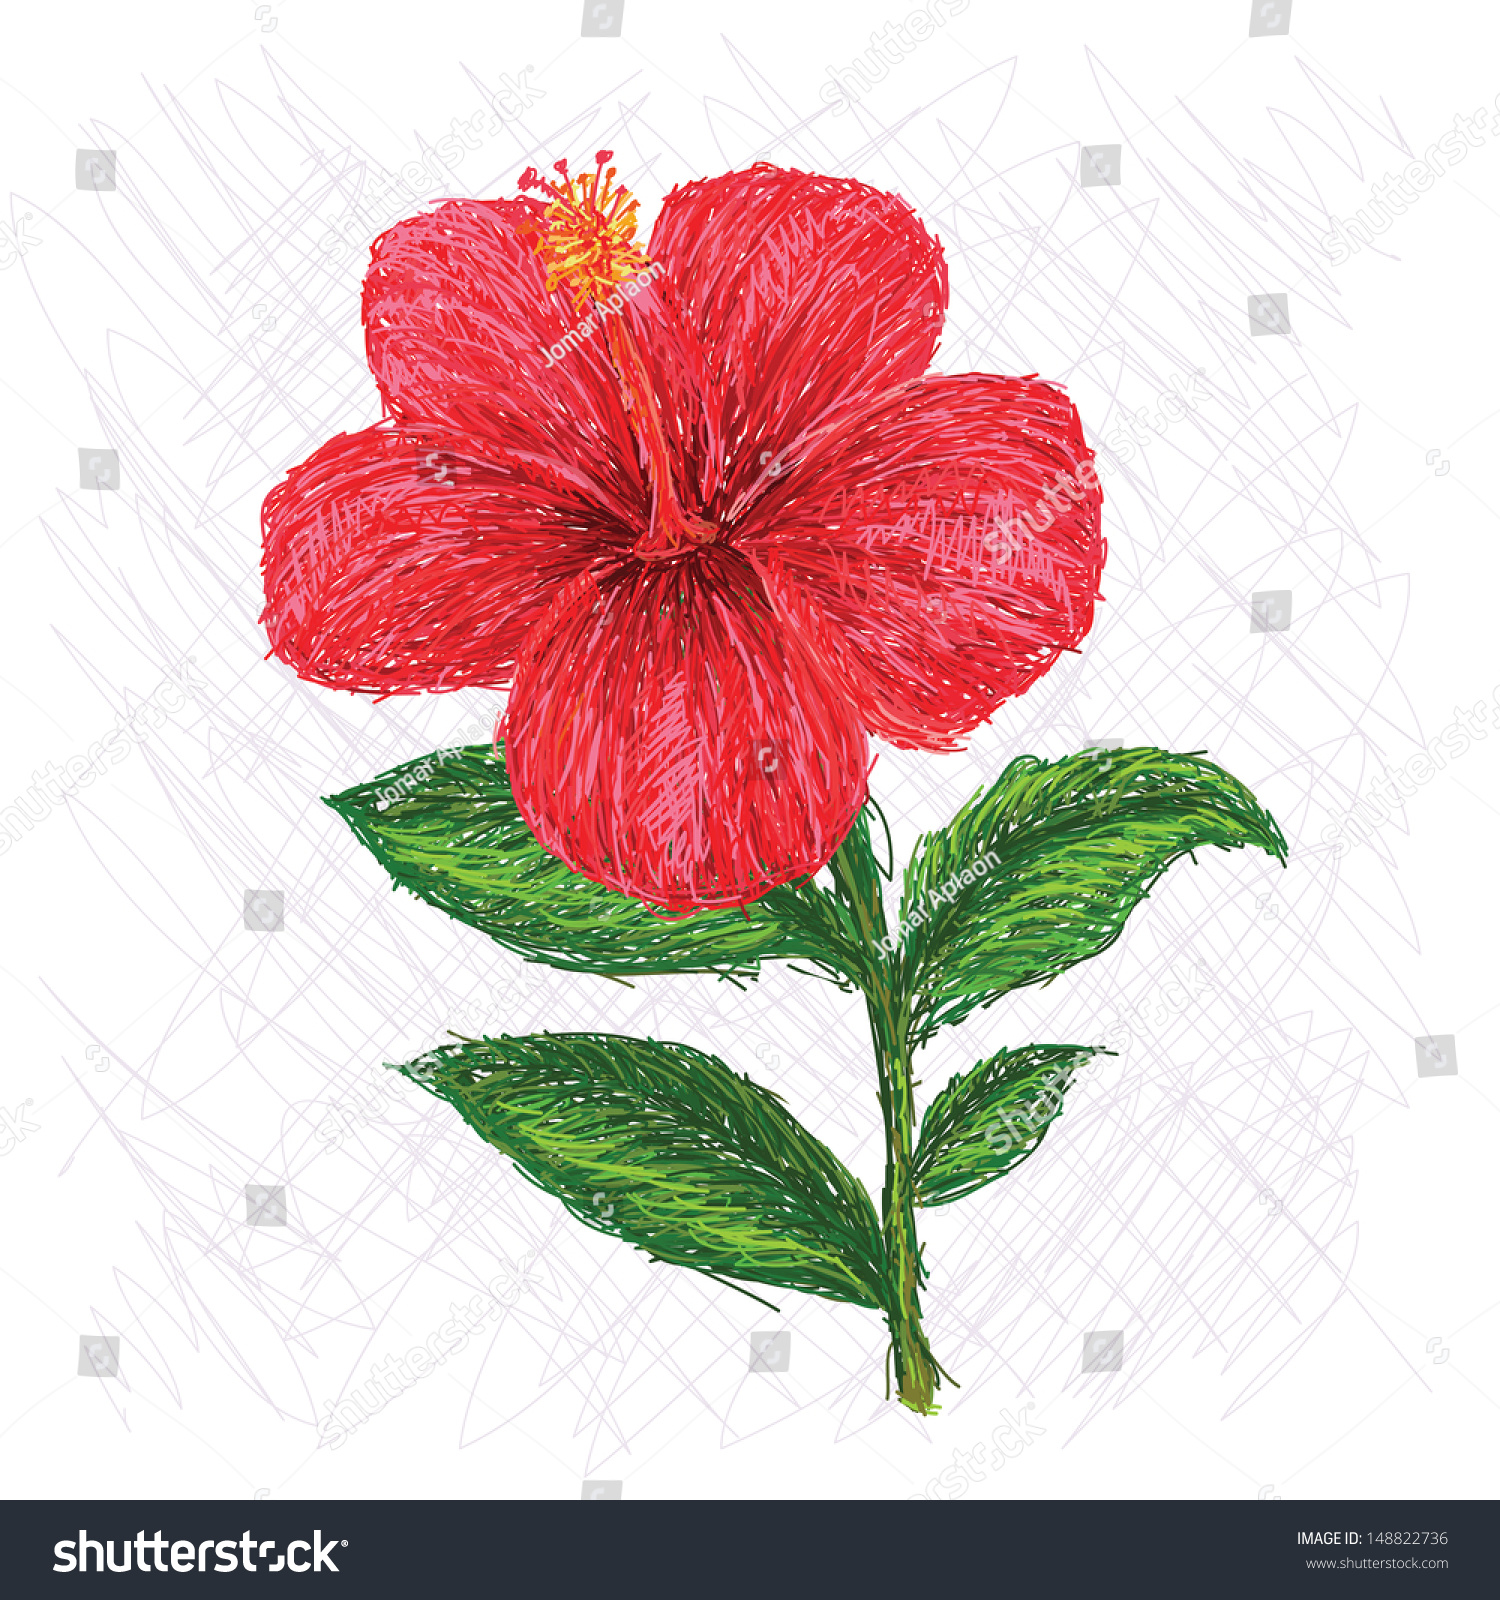 Unique style illustration hibiscus flower scientific stock unique style illustration of hibiscus flower scientific name hibiscus rosa sinensis izmirmasajfo